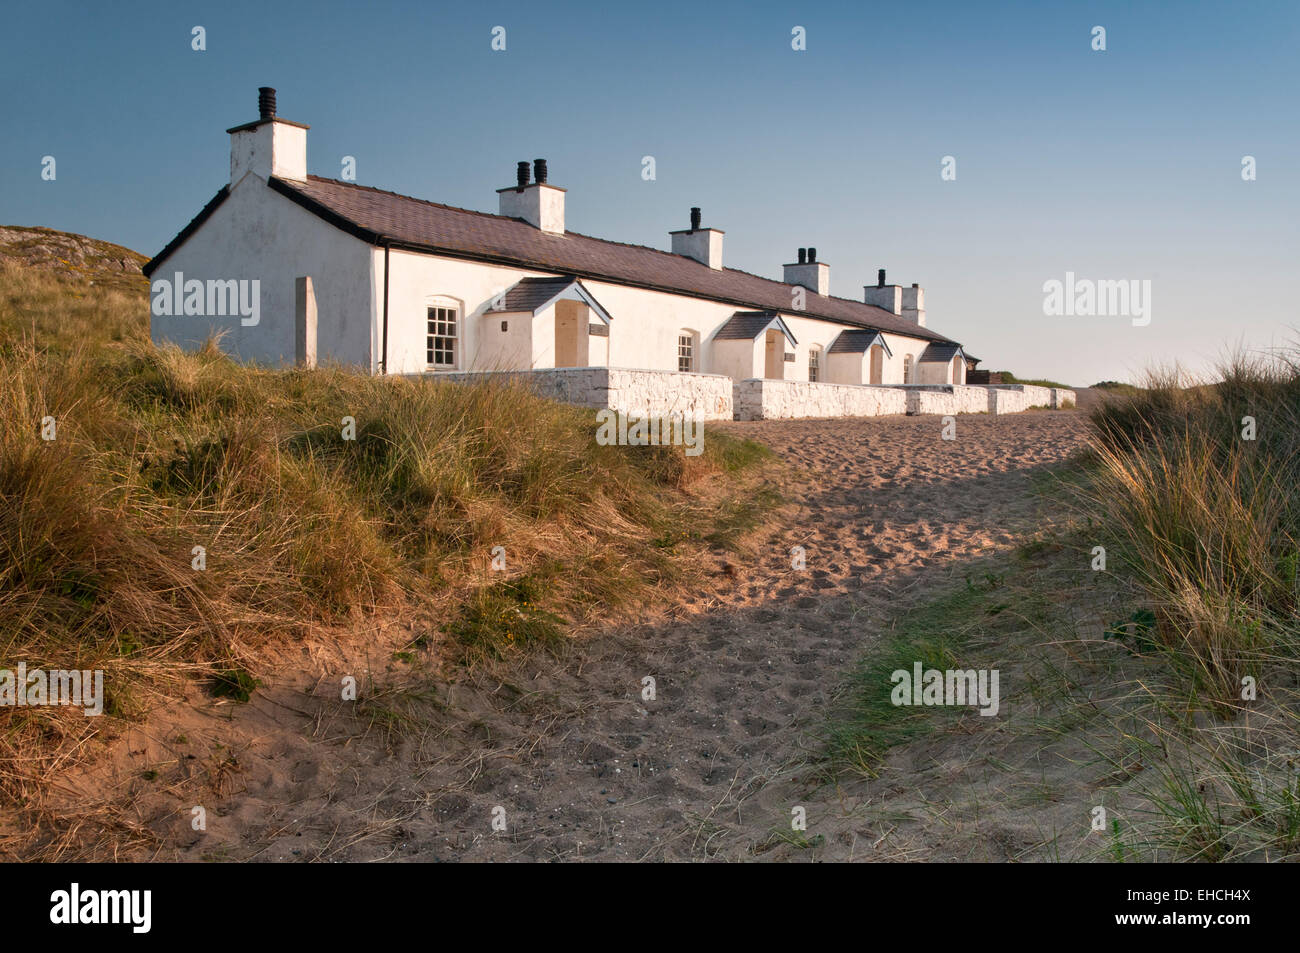 Whitewashed Pilots Cottages, Llanddwyn Island, Anglesey, North Wales, UK - Stock Image